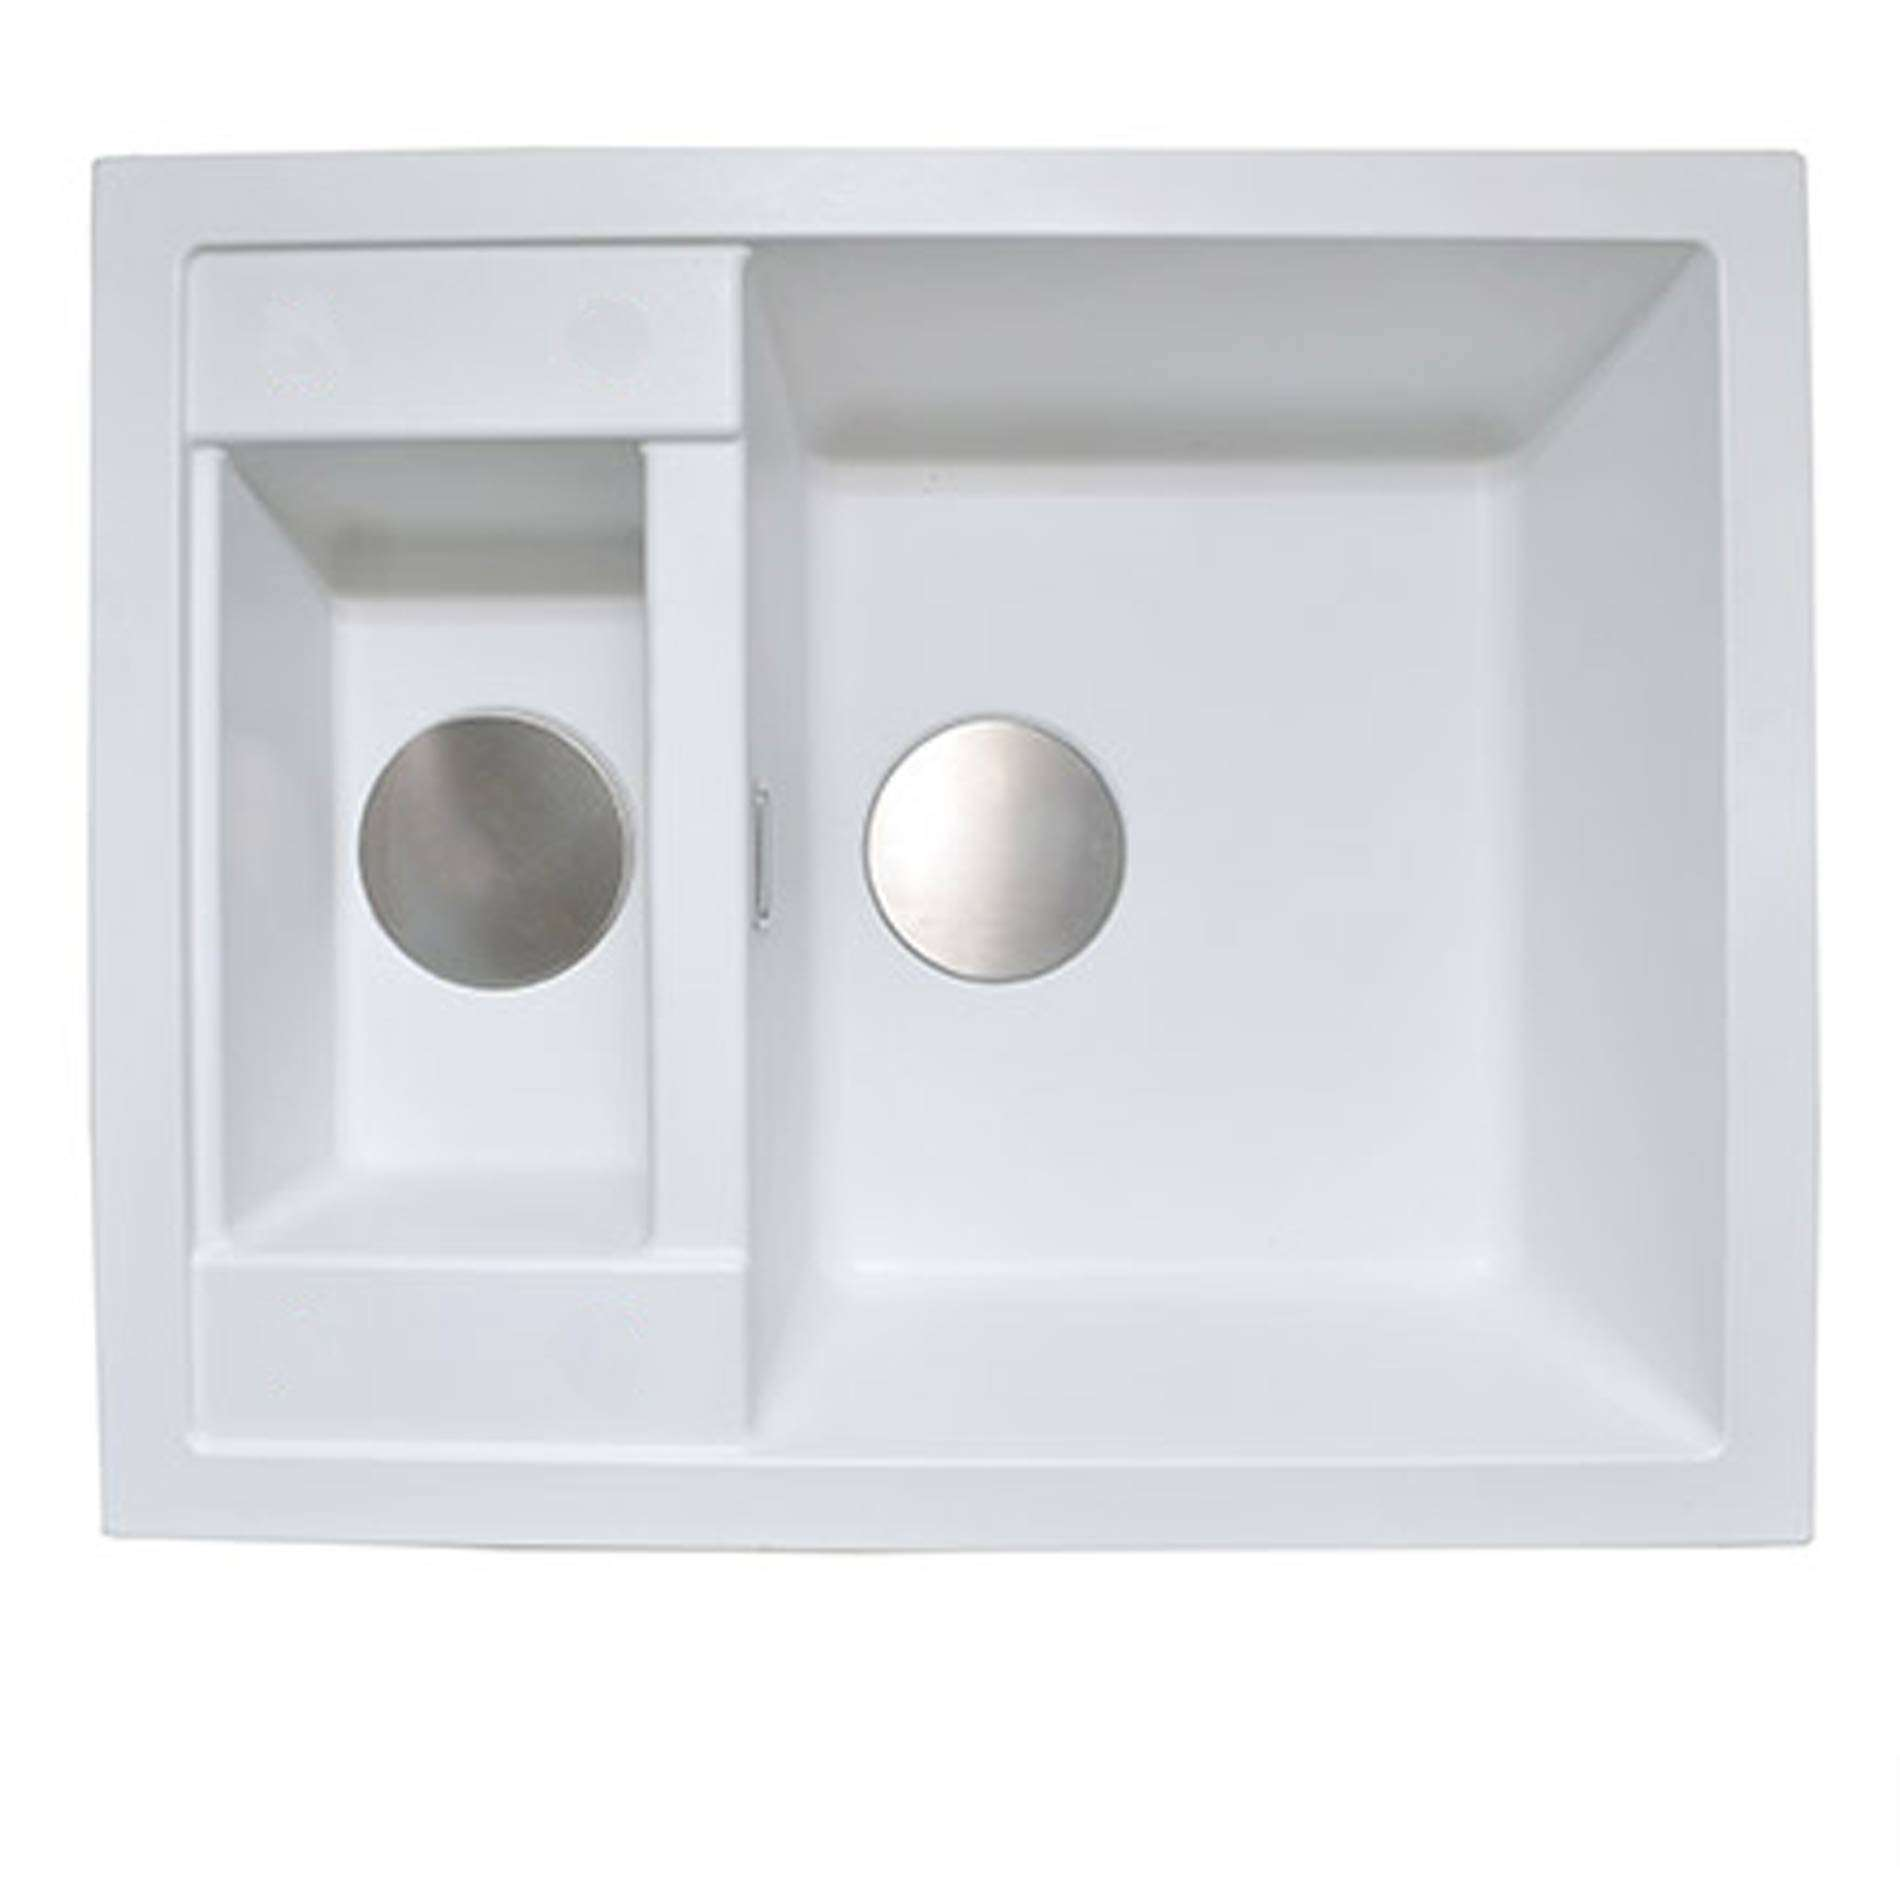 Picture of Shardduo 615i Polar White Sink